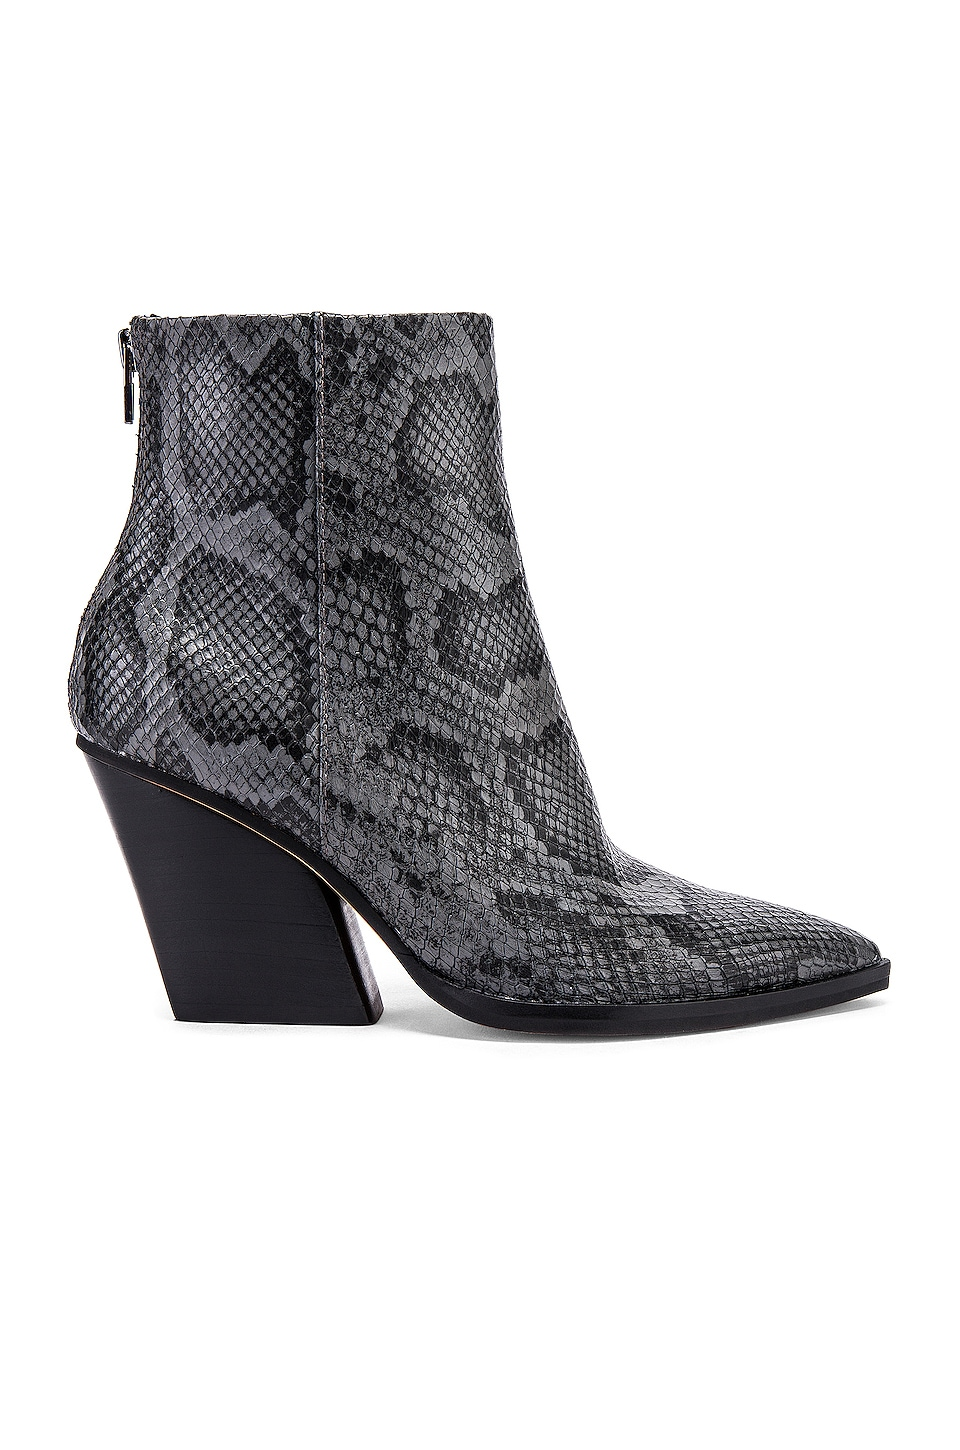 Dolce Vita Issa Bootie in Charcoal